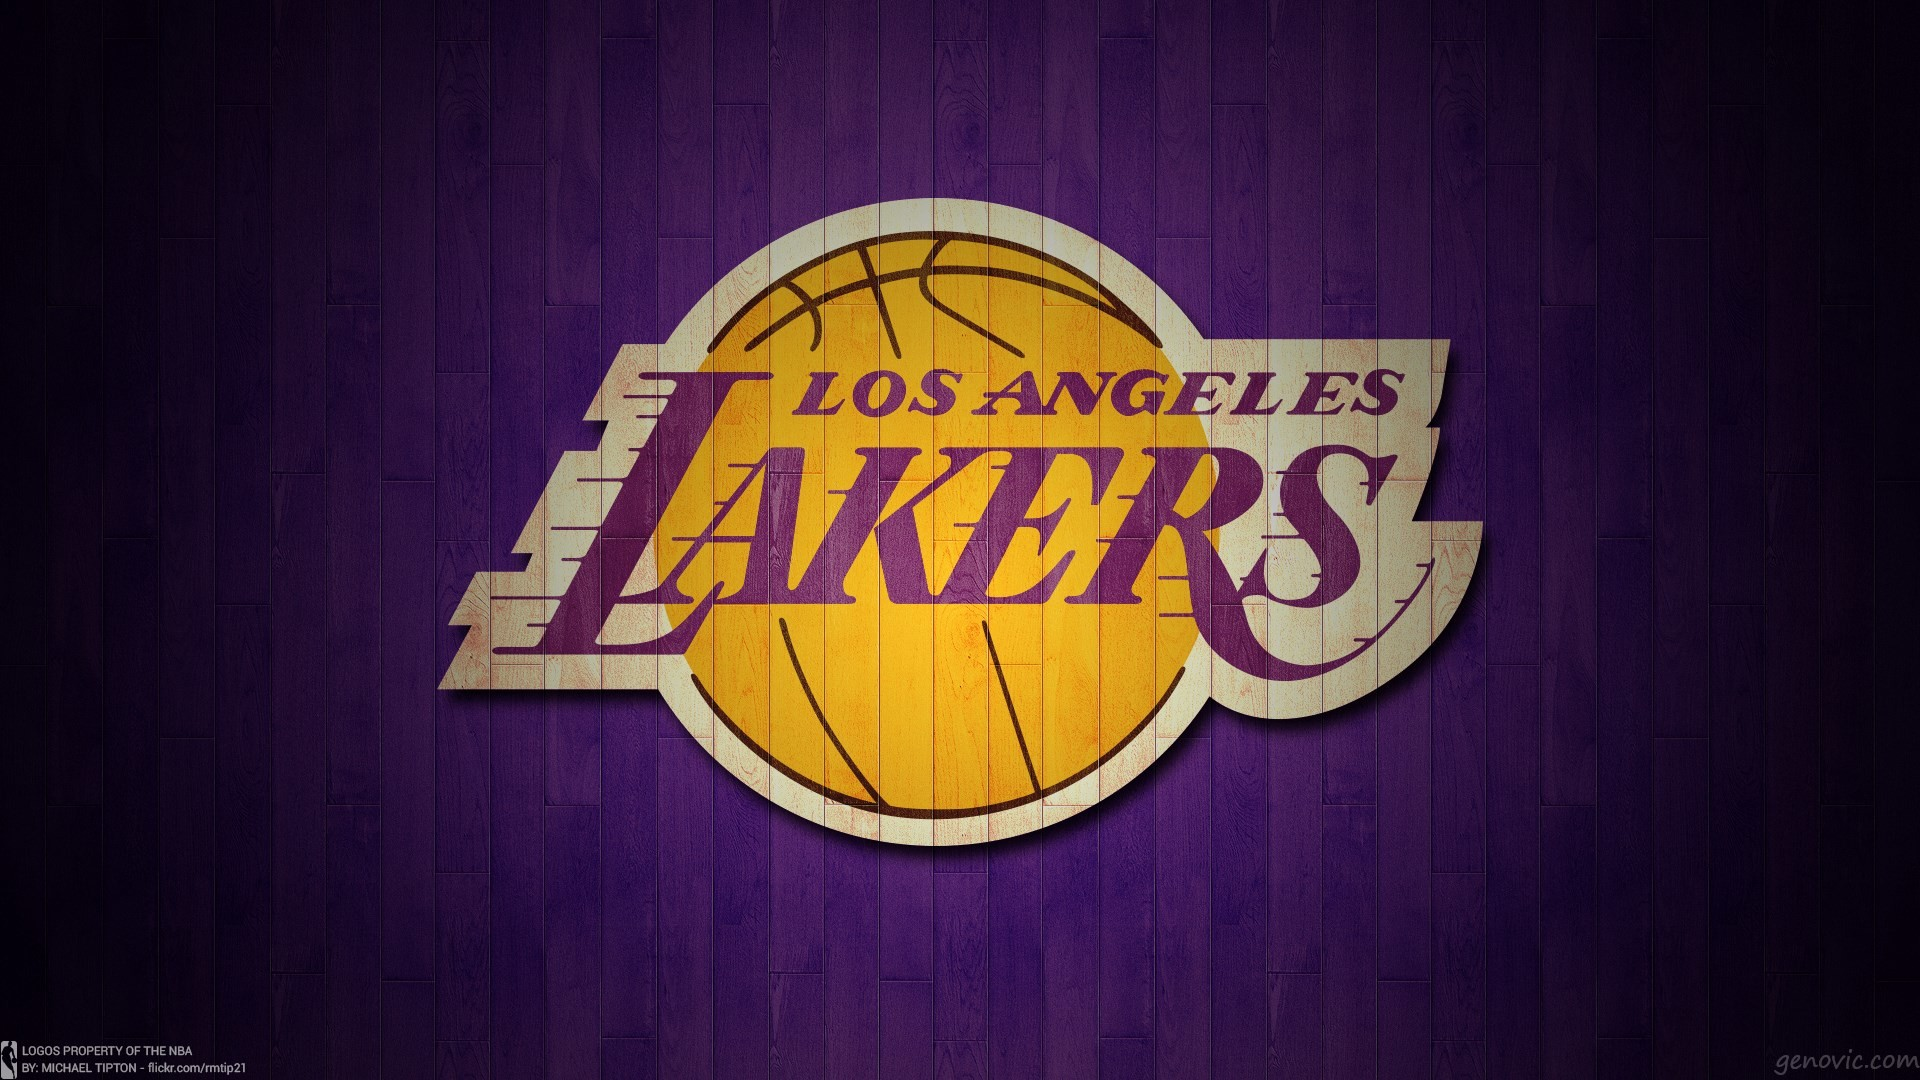 Iphone Los Angeles Lakers Wallpapers   Download Wallpaper   Pinterest    Lakers wallpaper, Los angeles wallpaper and Wallpaper